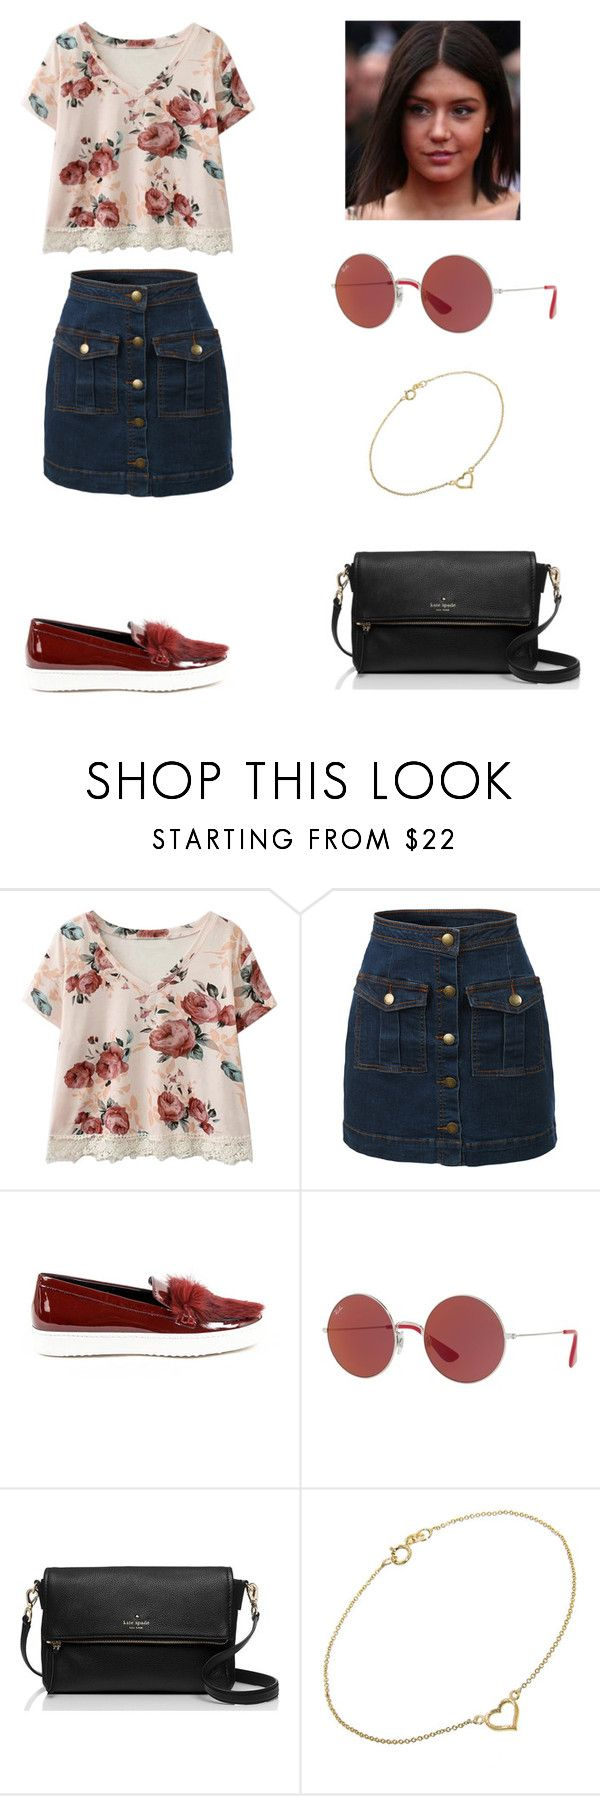 """Adèle Exarchopoulos"" by dakotahaileetayloradele ❤ liked on Polyvore featuring LE3NO, Versace 19•69, Ray-Ban, Kate Spade, Jennifer Meyer Jewelry and adeleexarchopoulos"